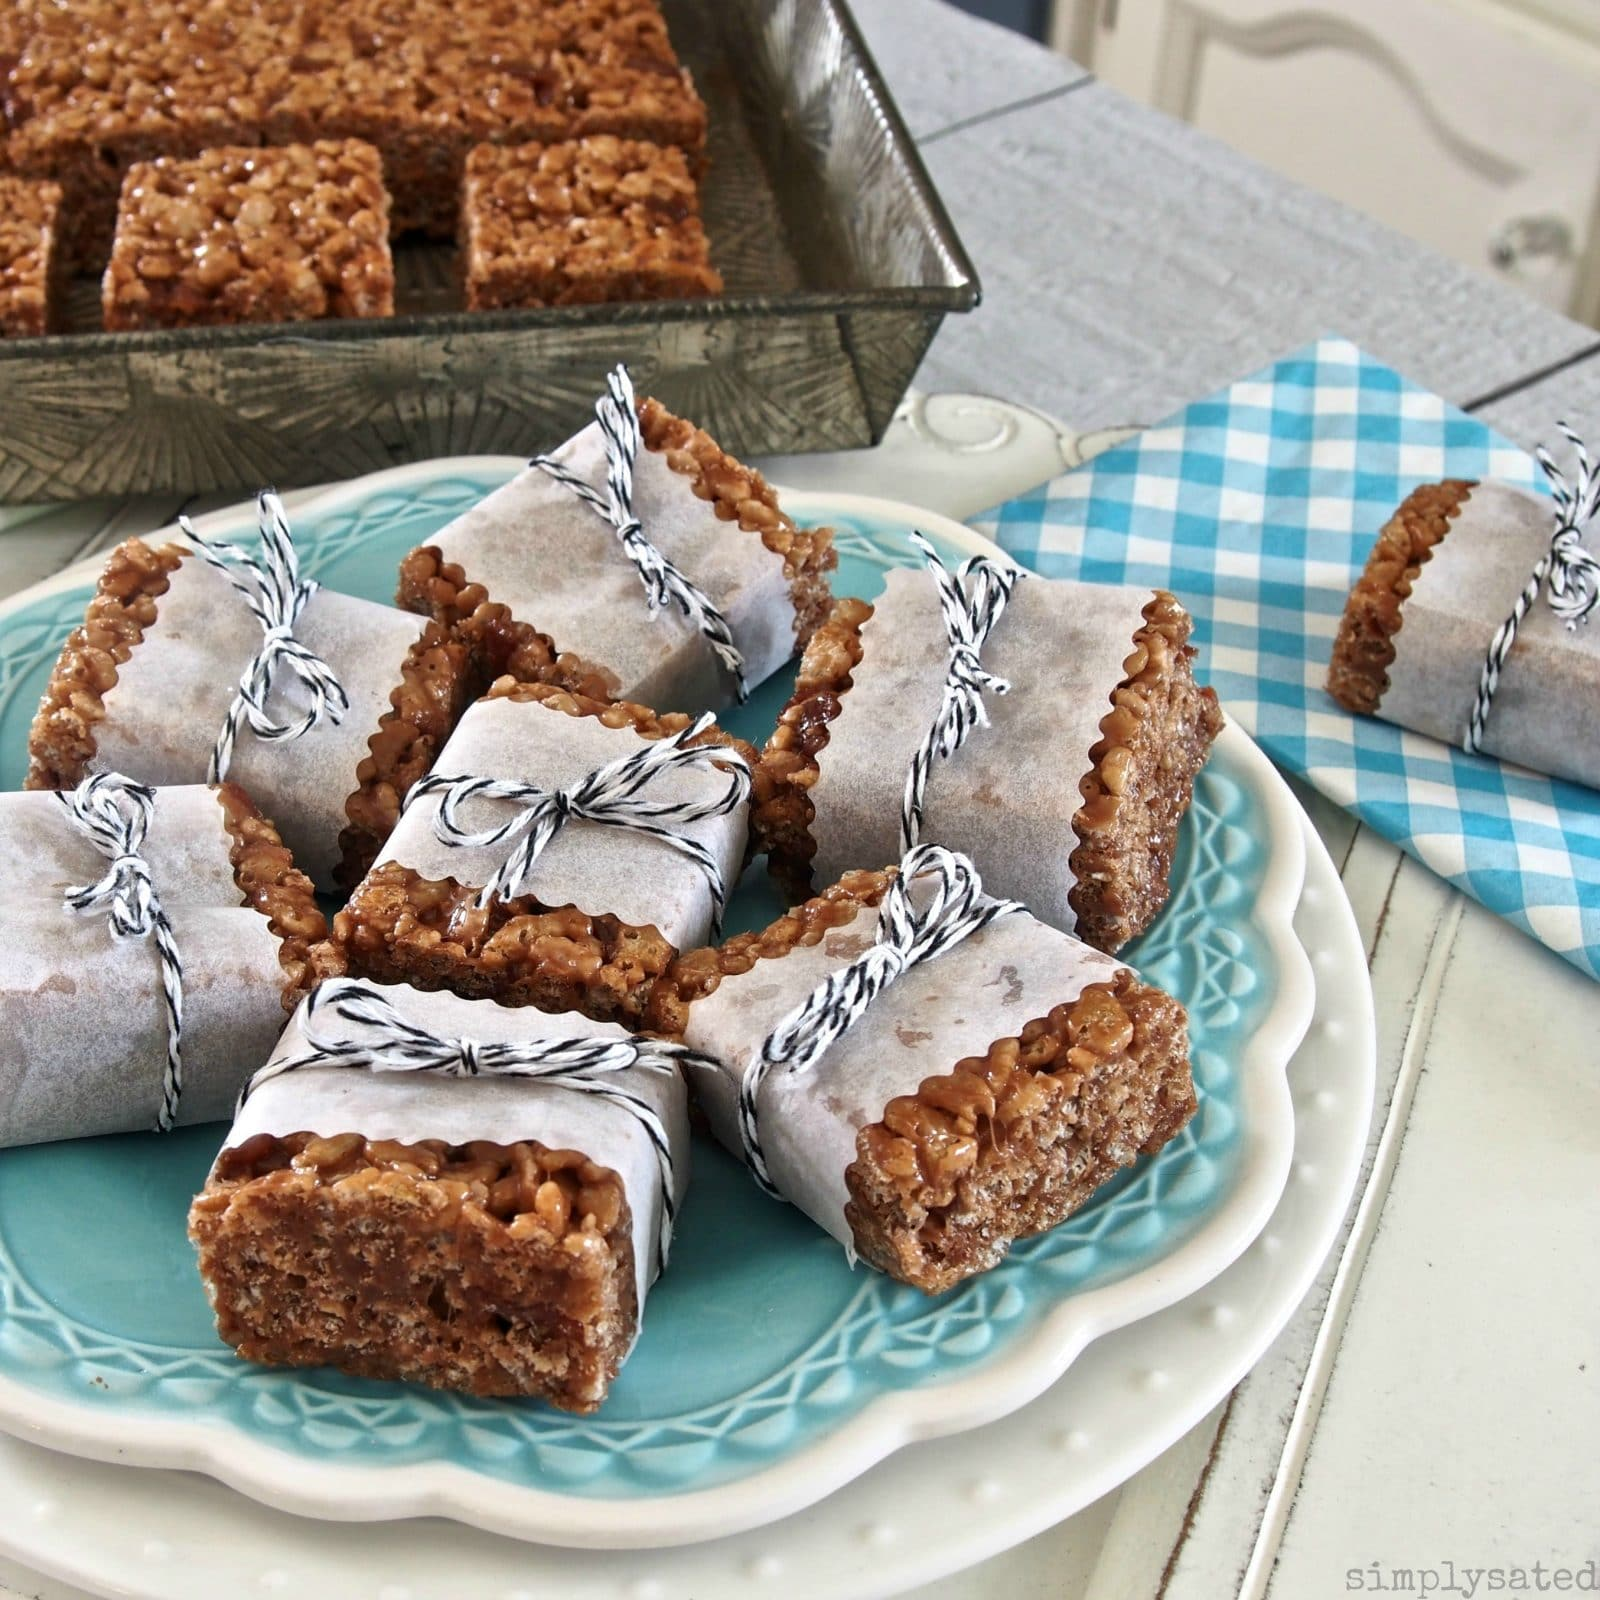 """Game Day Eats & Treats. 12 delicious recipes to """"wow the crowd"""" at your next sport's party. From entrees to salads to sweets - all are sure to please. Simply Sated"""